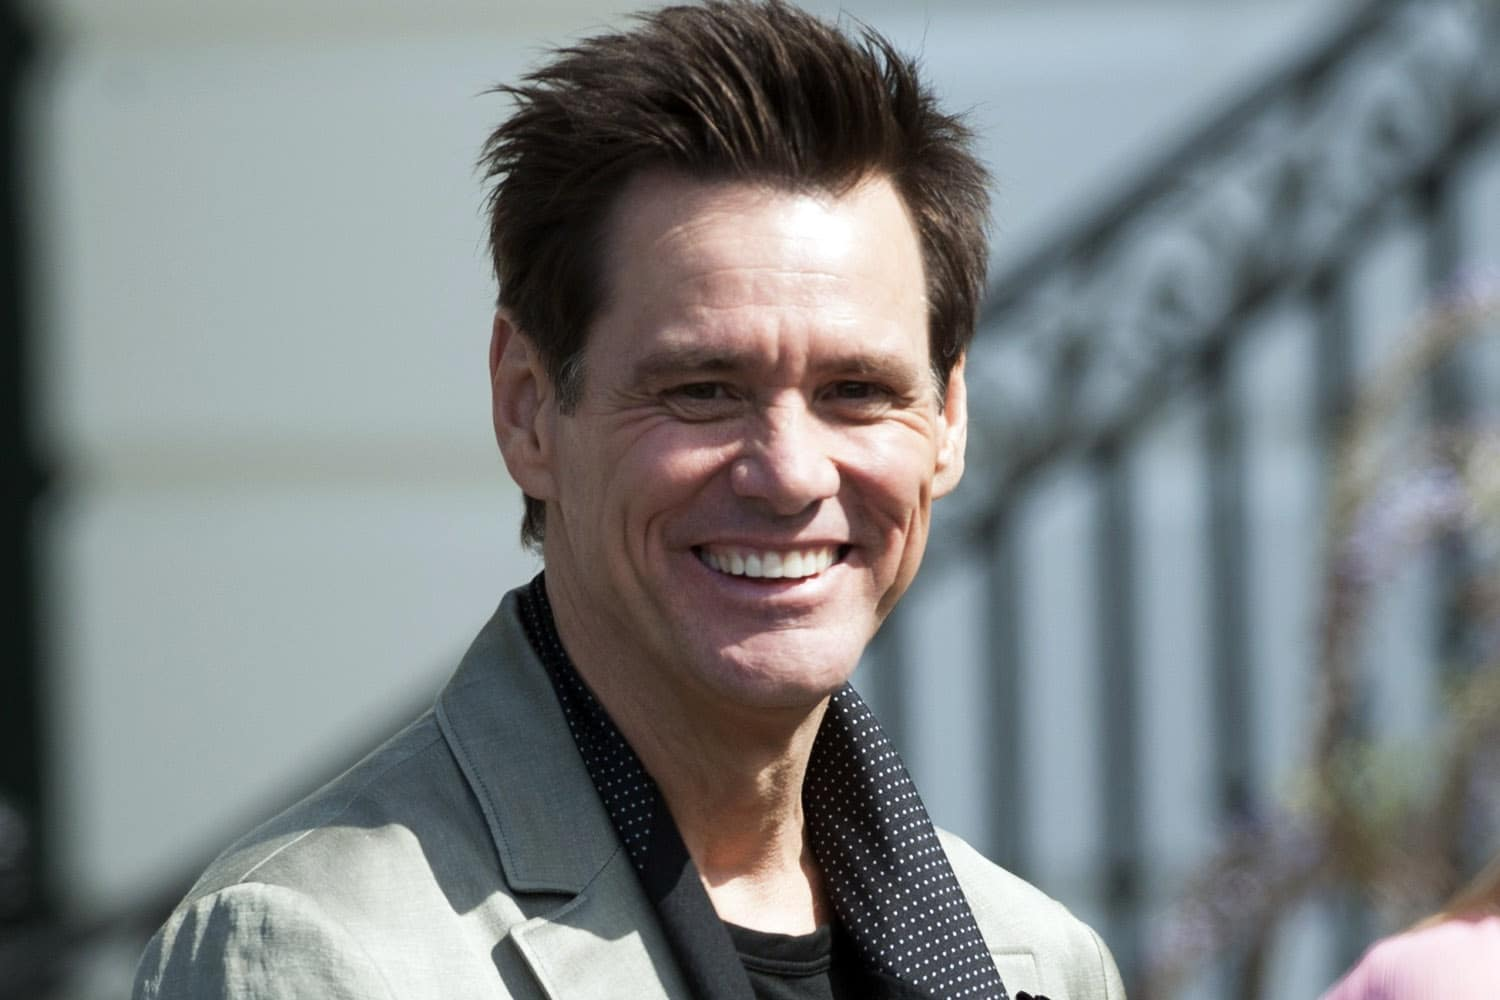 Jim Carrey Net Worth, ... Jim Carrey